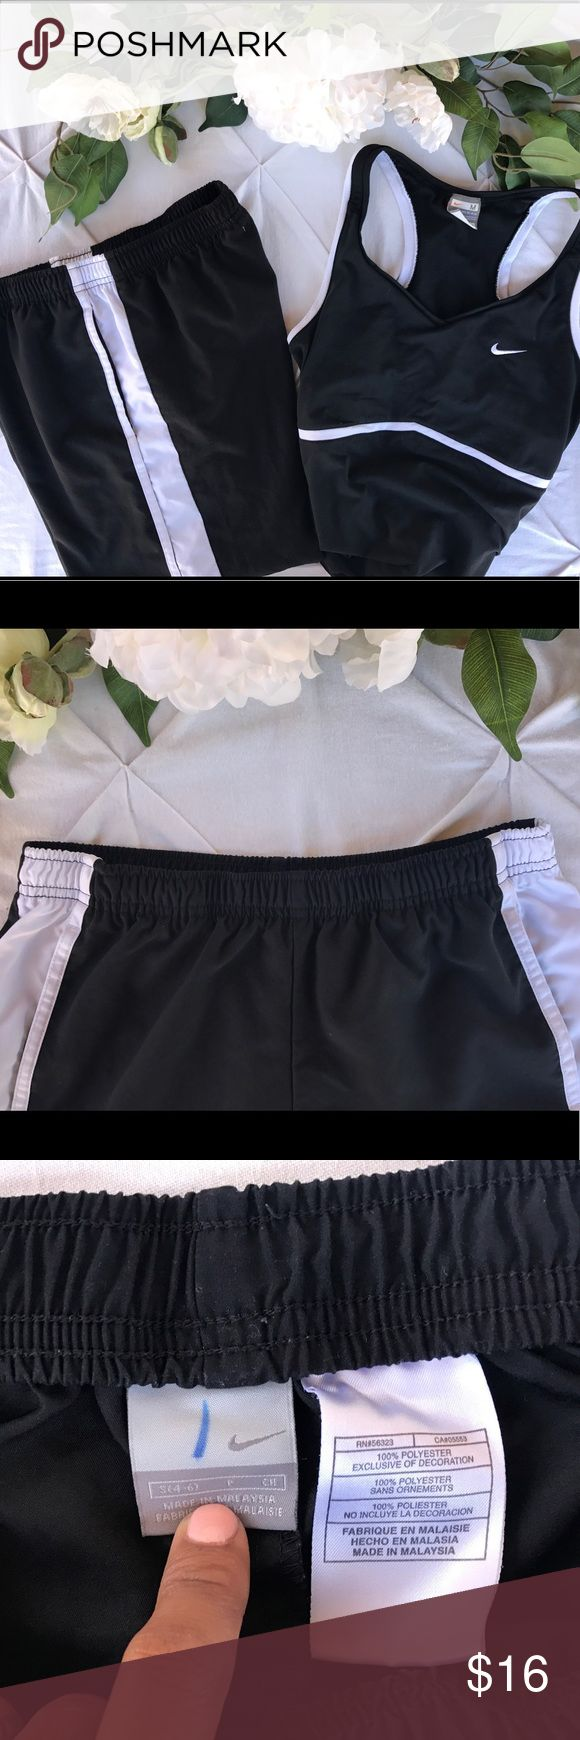 ⭐️Nike Capri workout pants⭐️ Nike workout pants 100% polyester and super soft. PLEASE reference pictures for measurement. Waist has an elastic waist band and drawstring to give you the perfect look. In excellent used condition 🛑🛑they fit like 7/8 pants or ankle pants but for me personally since I'm short they fit me like high waters but they are suppose to fit abound the ankle 🛑🛑🛑please ask questions ⭐️ Nike Pants Track Pants & Joggers